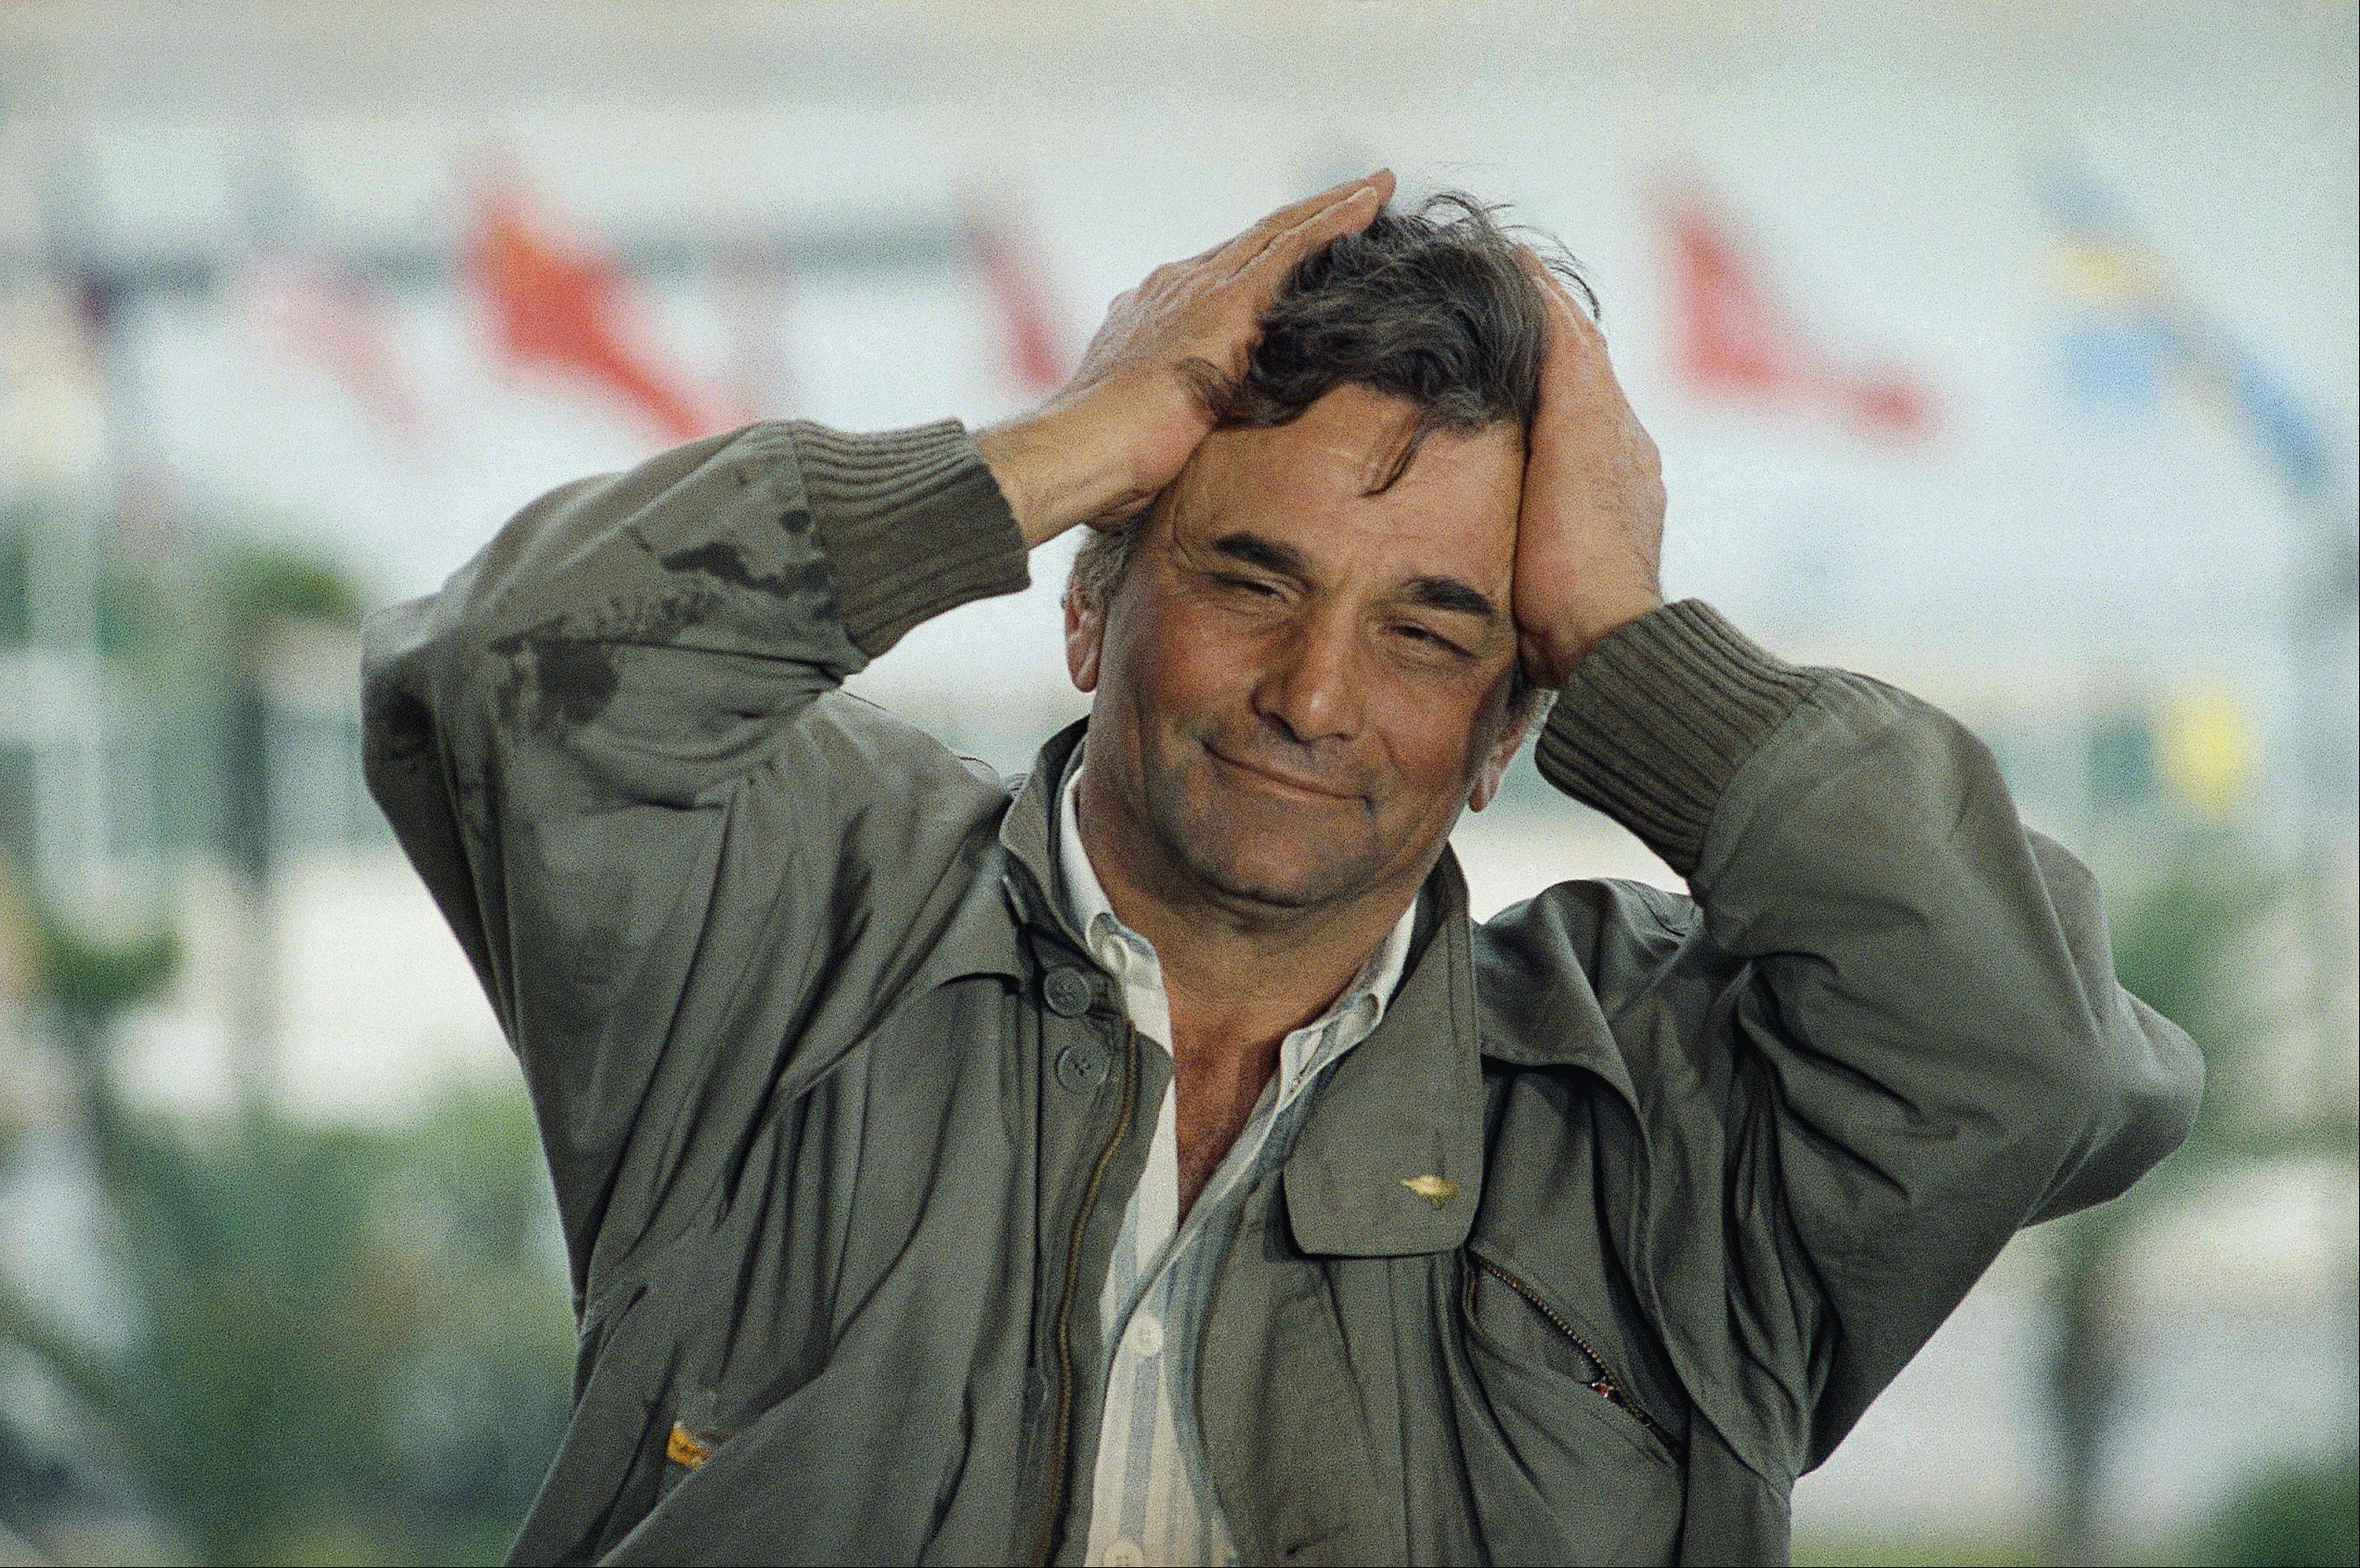 American actor Peter Falk gestures, holding his head in his hands on Sunday, May 17, 1987 in Cannes as he presented the Wim Wenders film in competition for the 40th Cannes Film Festival.